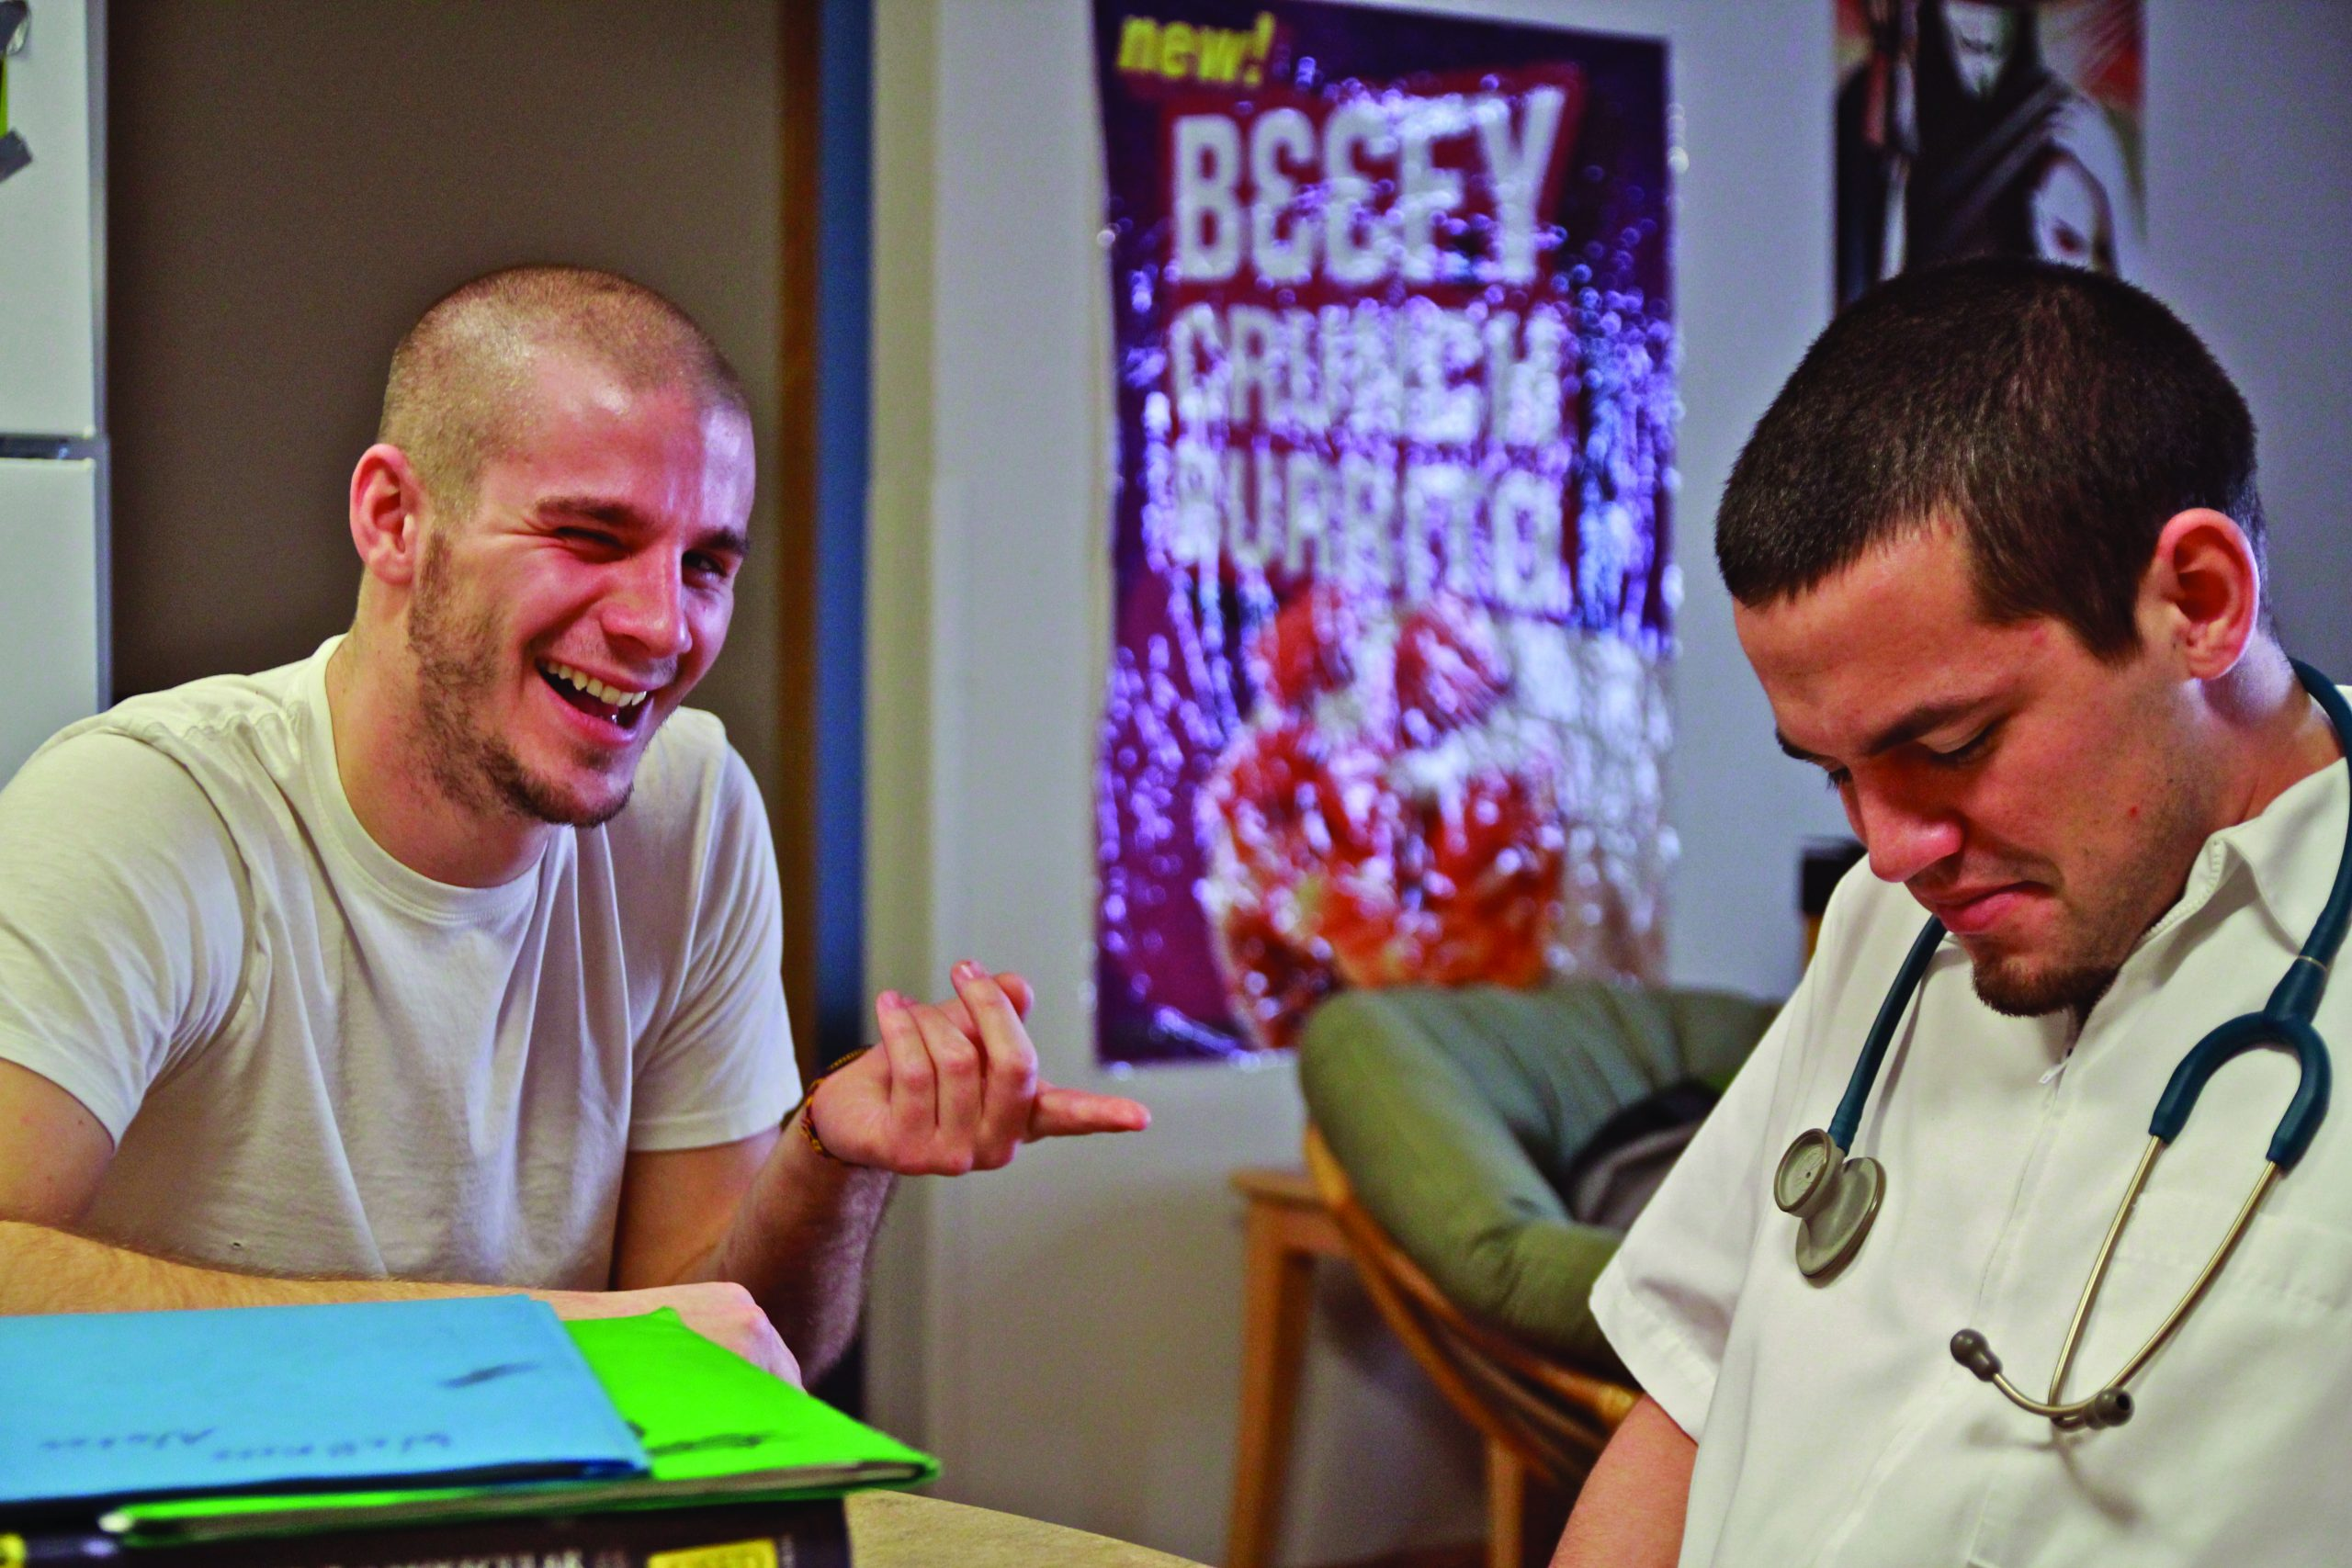 Student laughs at a nursing student